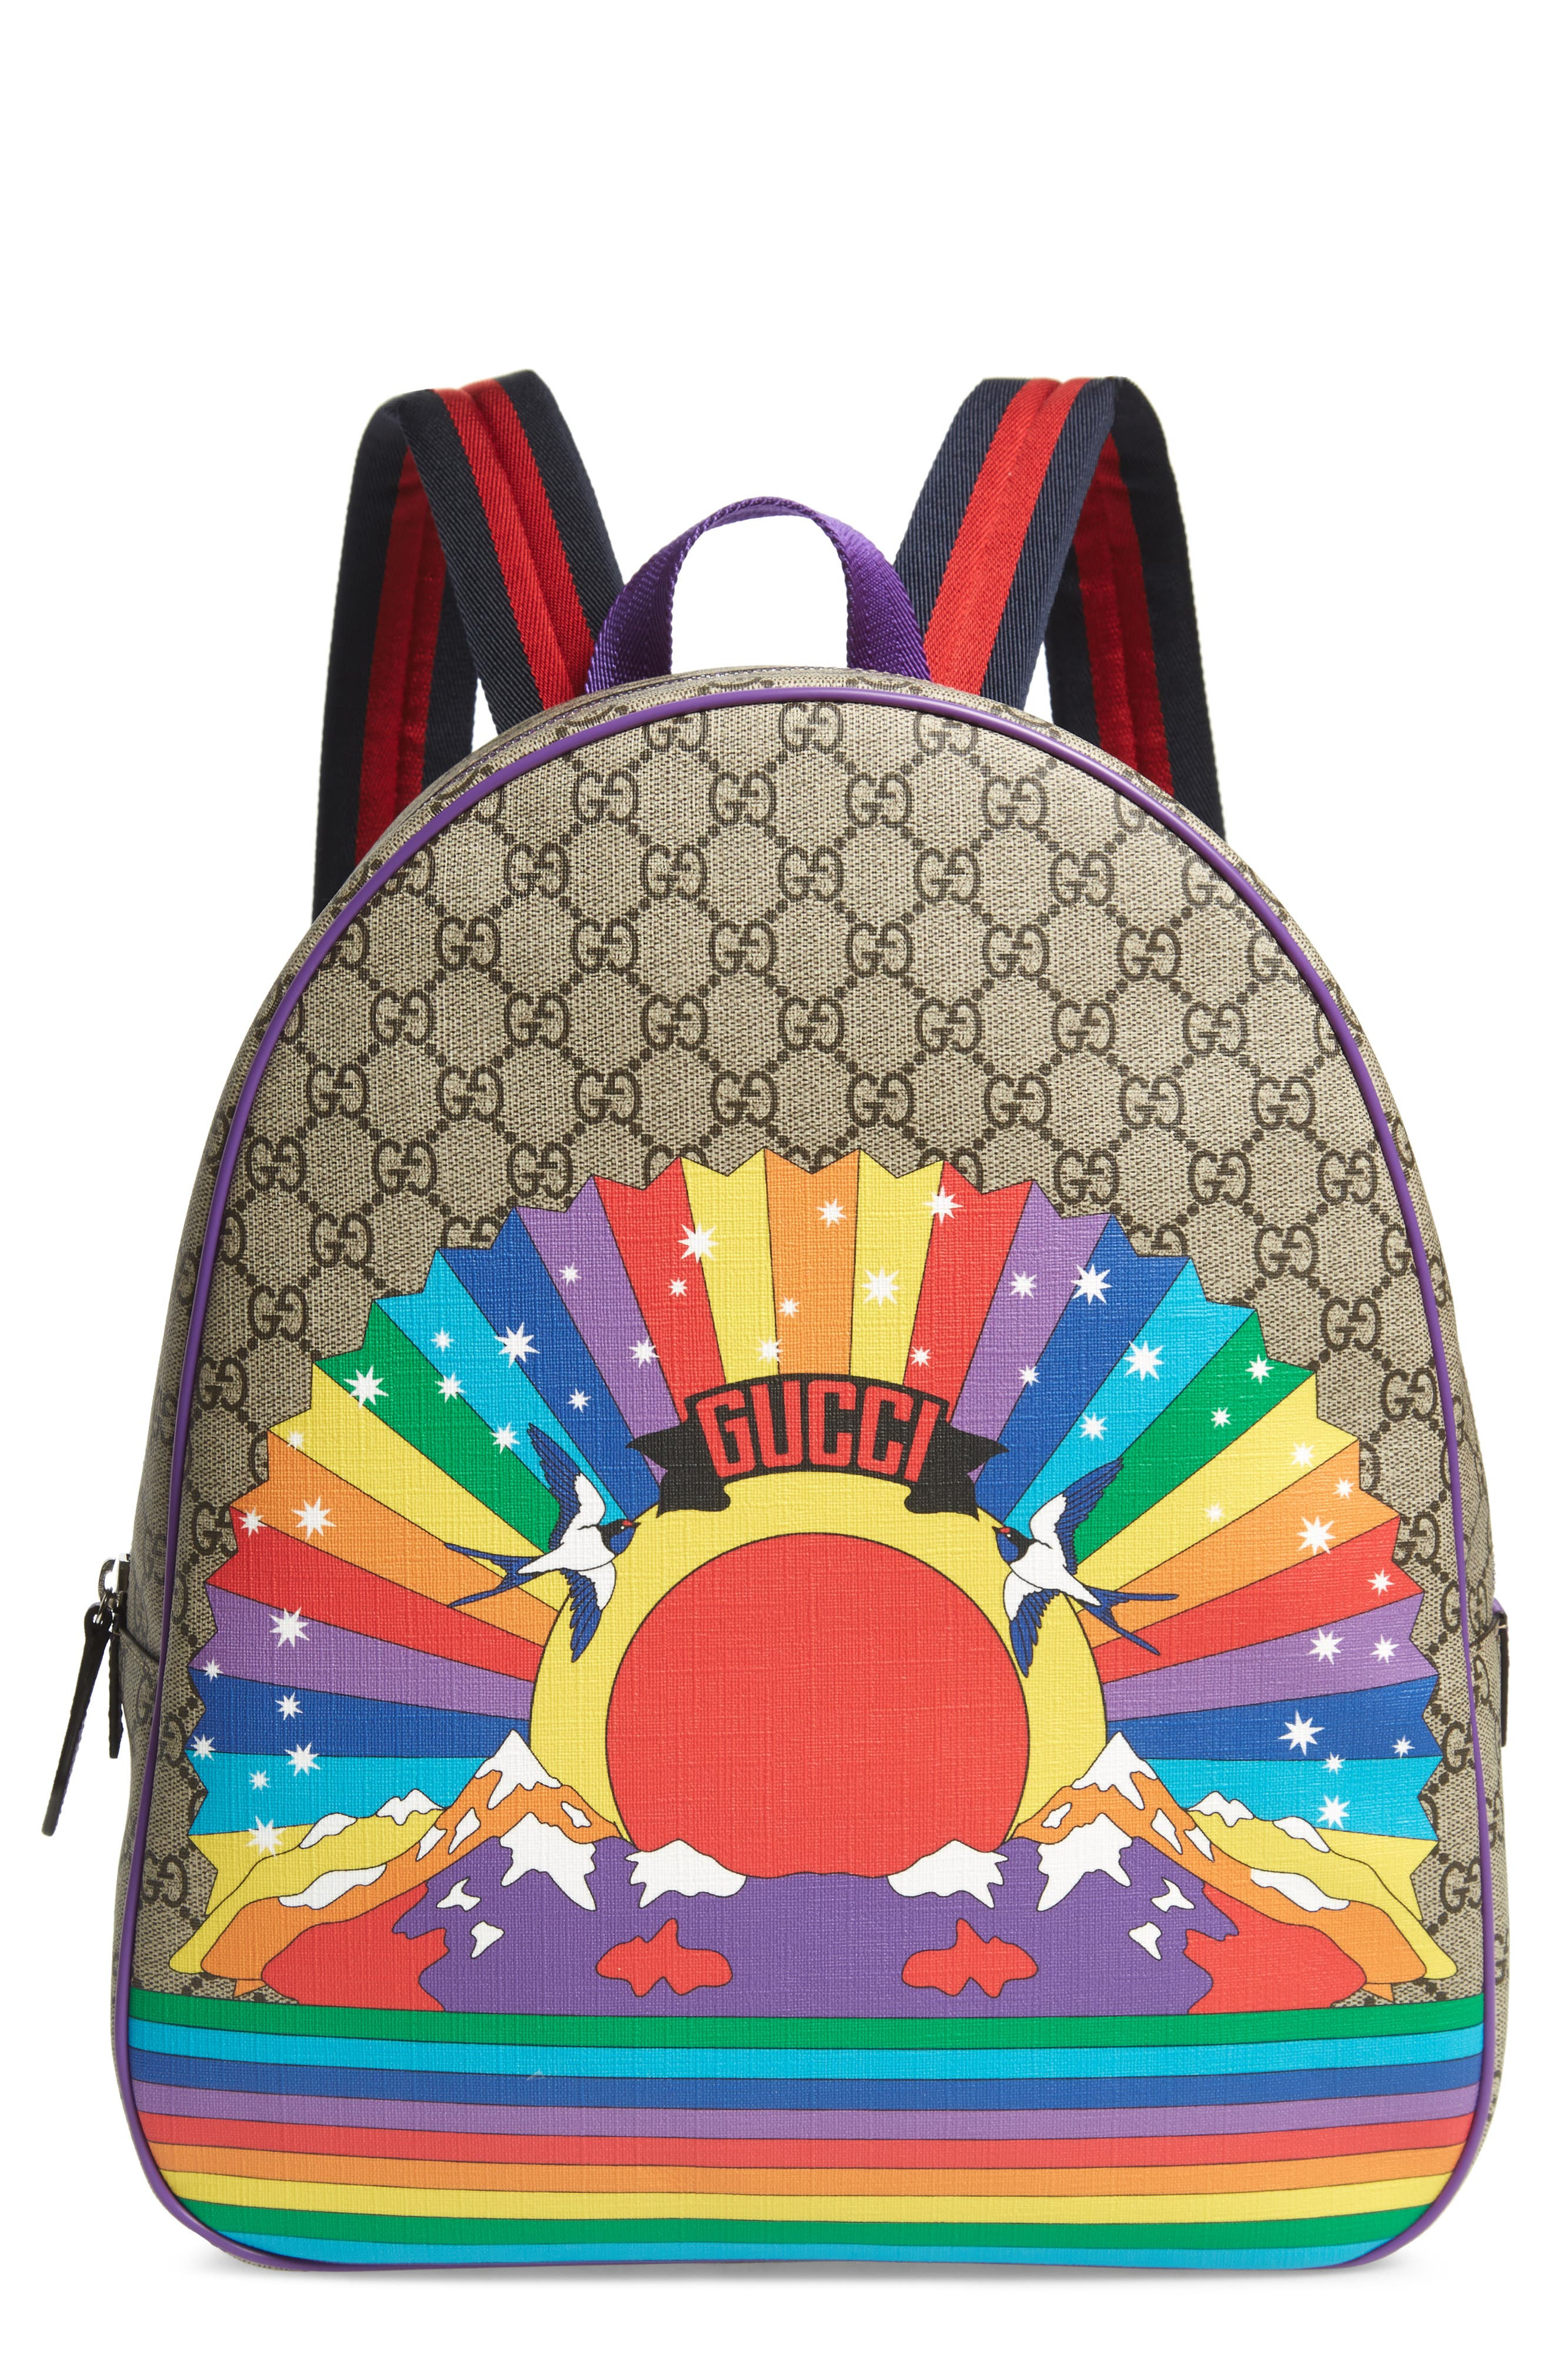 GUCCI,                             Junior Logo Backpack,                             Main thumbnail 1, color,                             BEIGE MULTI